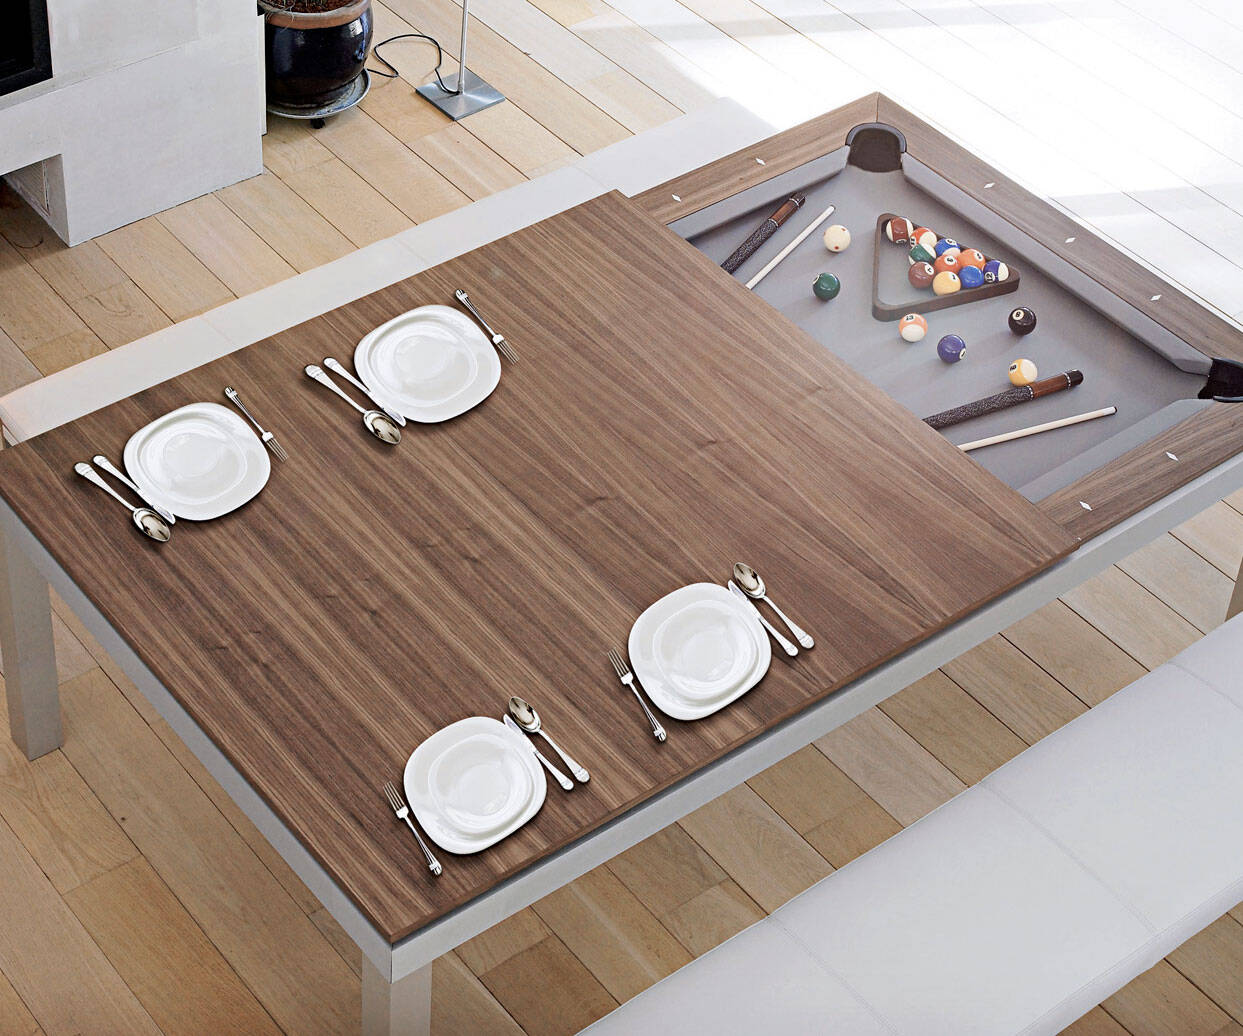 Convertible Billiards Dining Table - http://coolthings.us